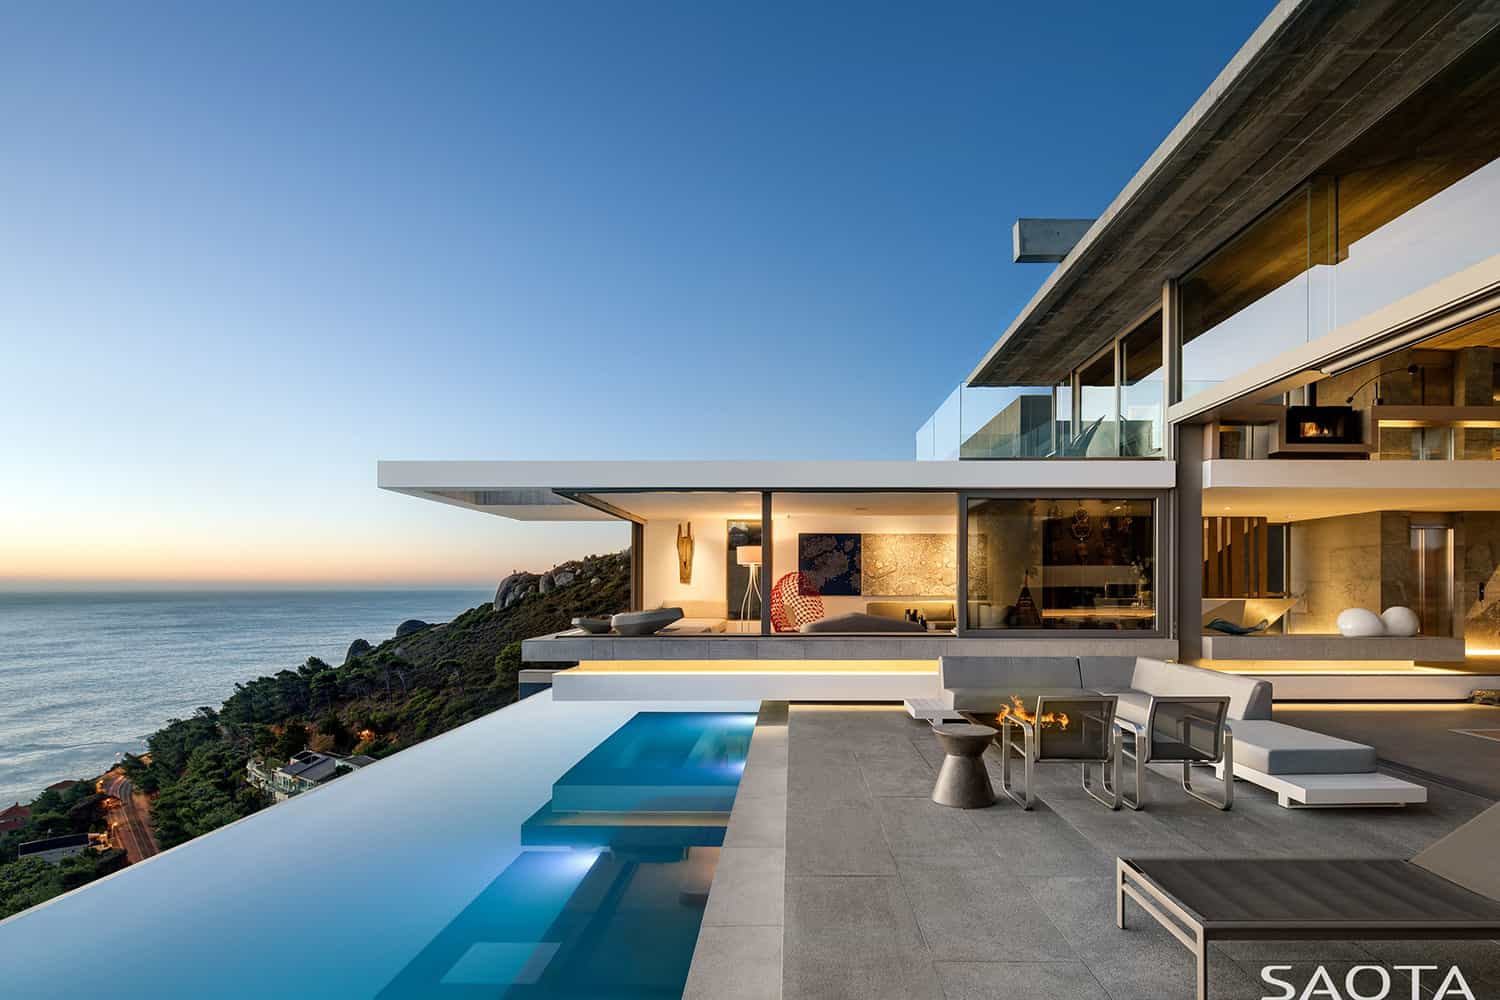 Beyond spectacular beach house perched on a hillside in Cape Town